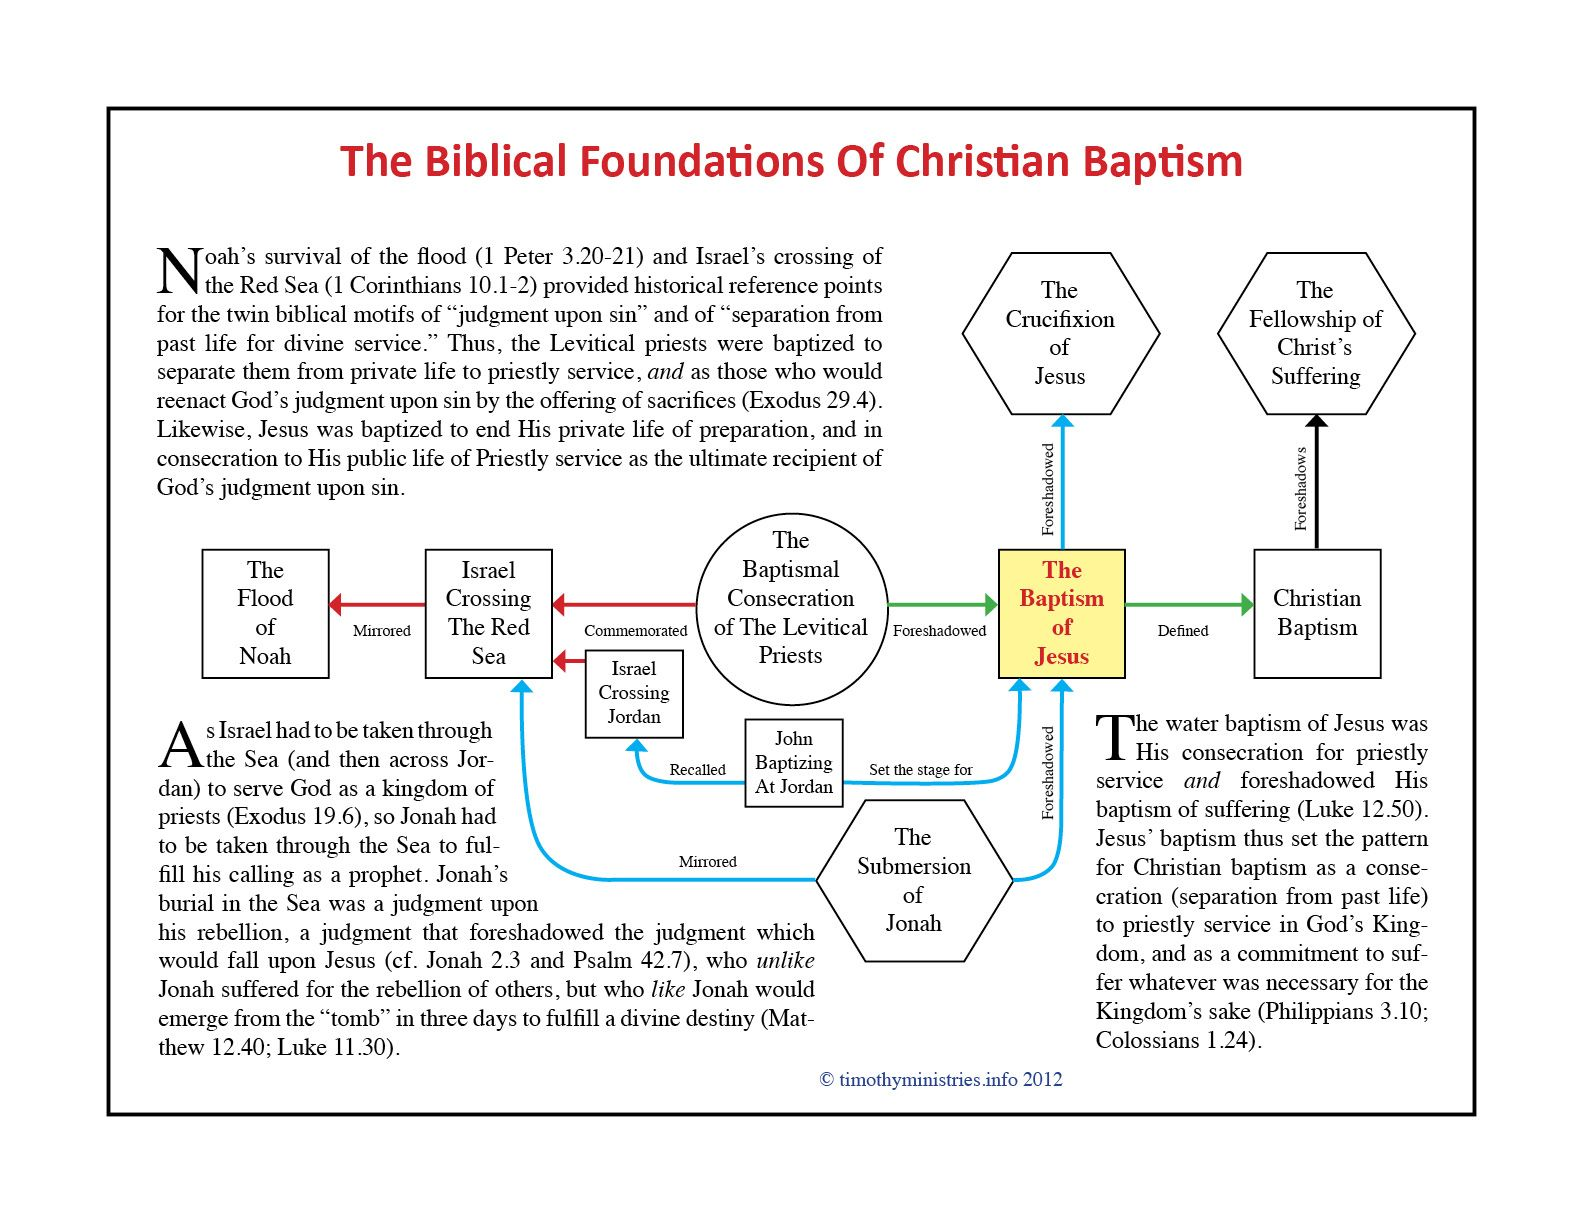 medium resolution of this chart shows at a glance the rationale for the baptism of jesus and the baptism of his followers